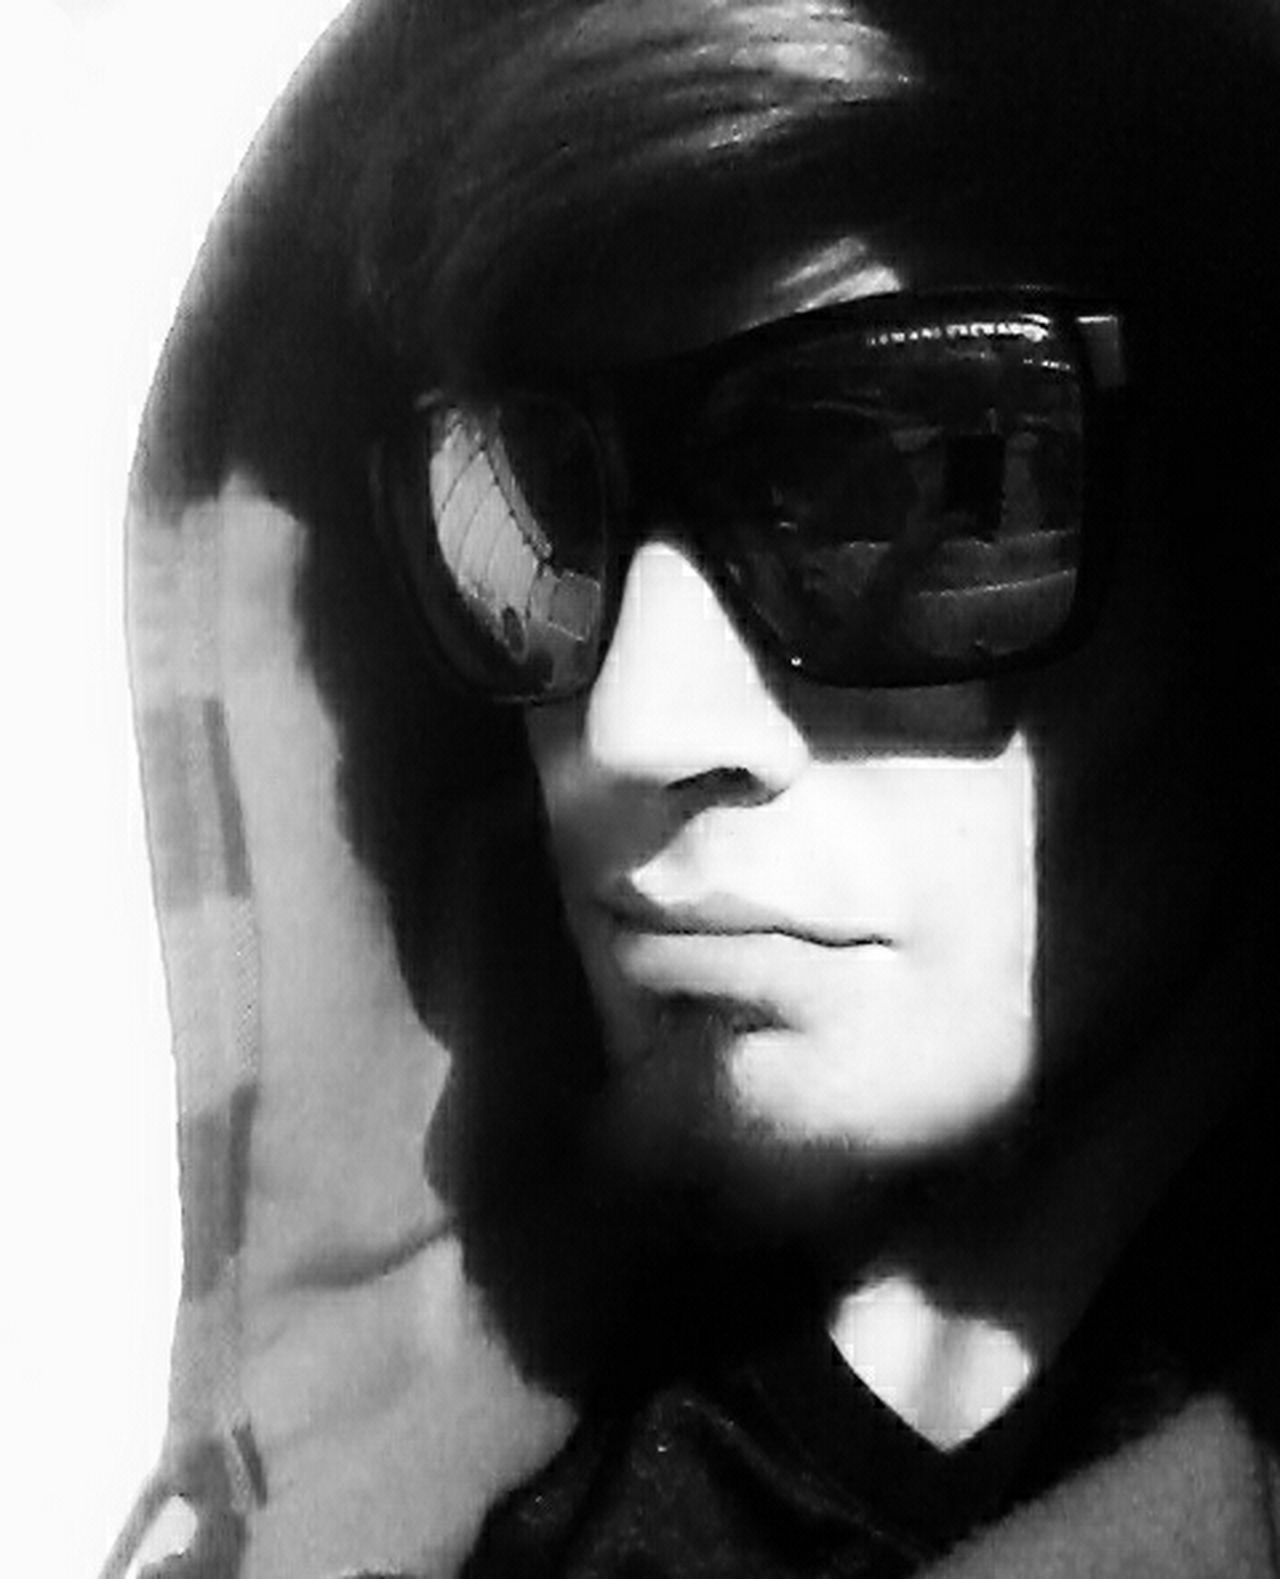 Taking Photos Check This Out Hello World Hi! Look Eyem Portland Check This Out EyeEm Gallery Eyeemphotography Facebook Faces Of EyeEm JustMe Selfie Selfportrait That's Me Monochromatic Close-up Headshot Stunna Shades On ;) Blackandwhite Photography Youth Of Today Armani Shades Of Grey This Week On Eyeem